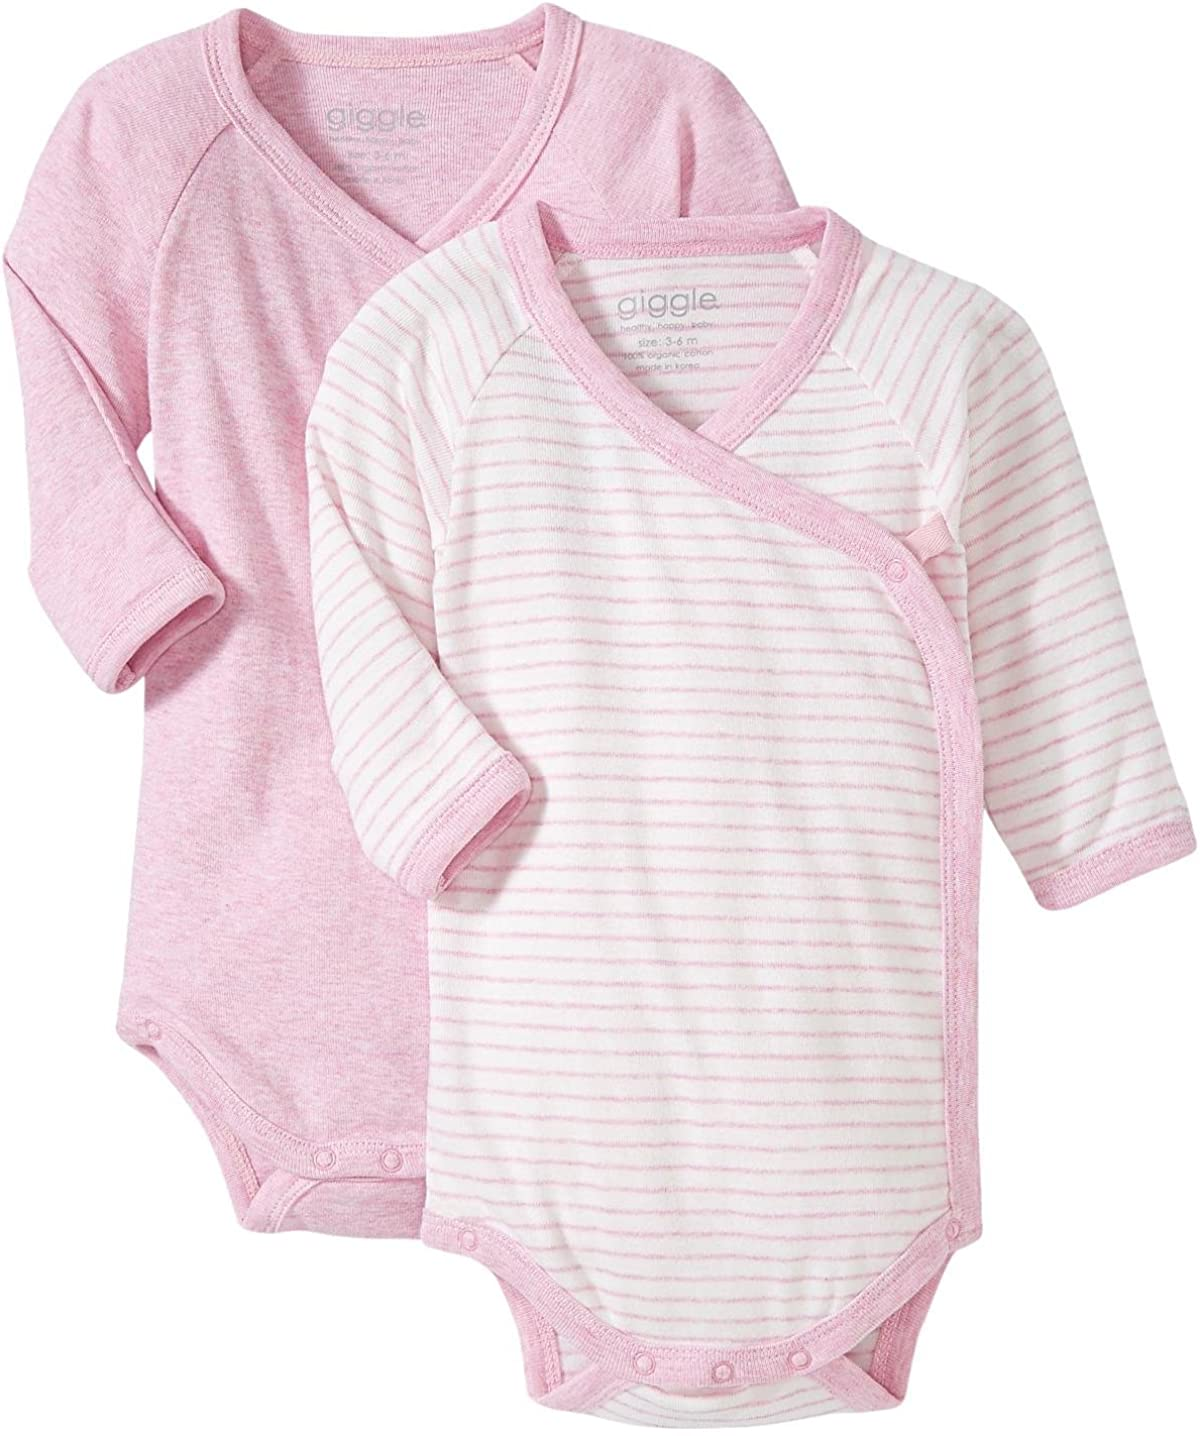 Same day shipping giggle unisex-baby L S Sale Special Price Baby 2 Set of Body